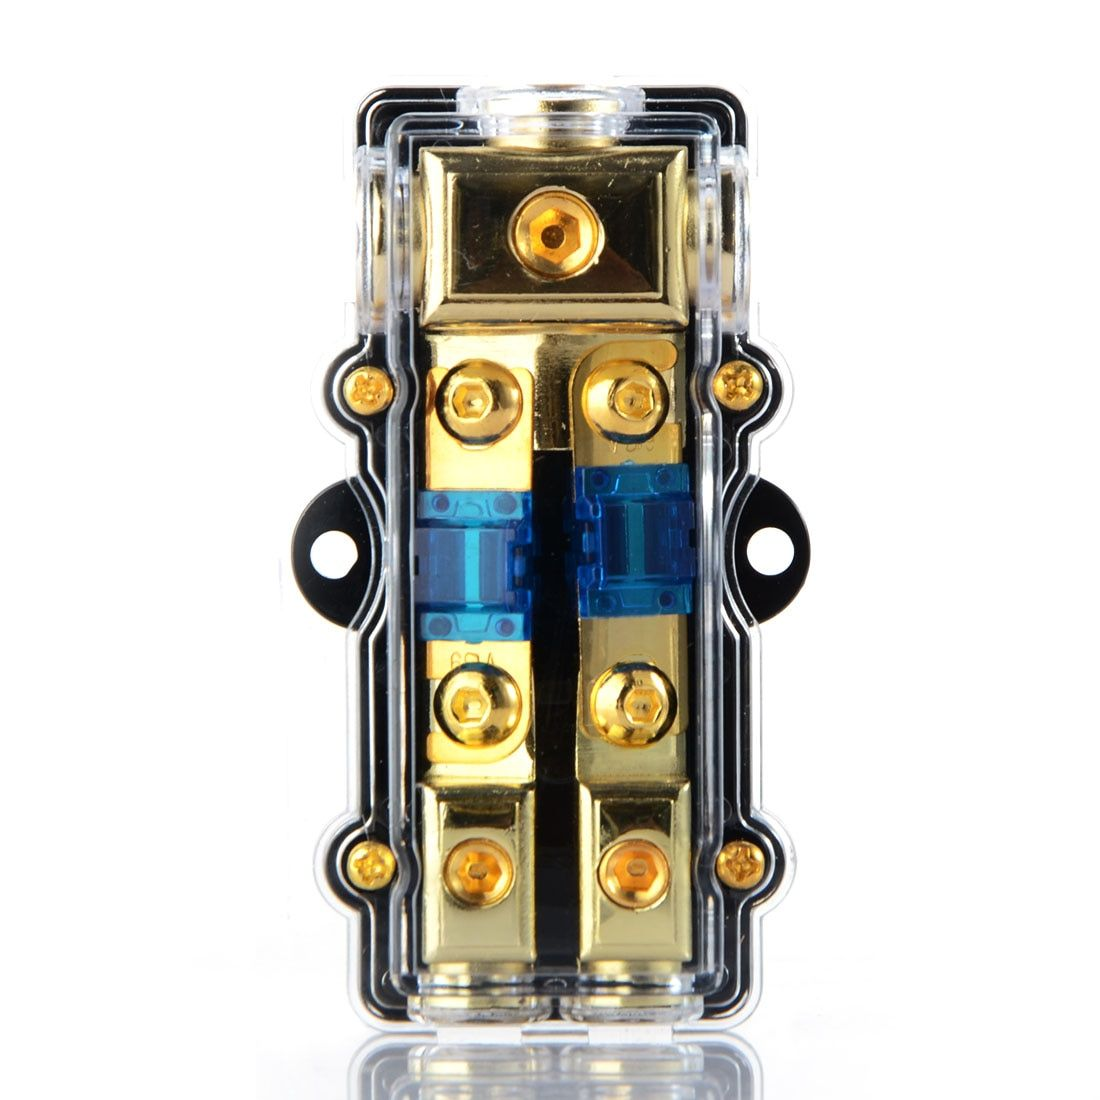 1PCS Universal Car Auto Vehicles Audio Amplifier 1 in 2 ways Out Fuse Holder Fuse Box